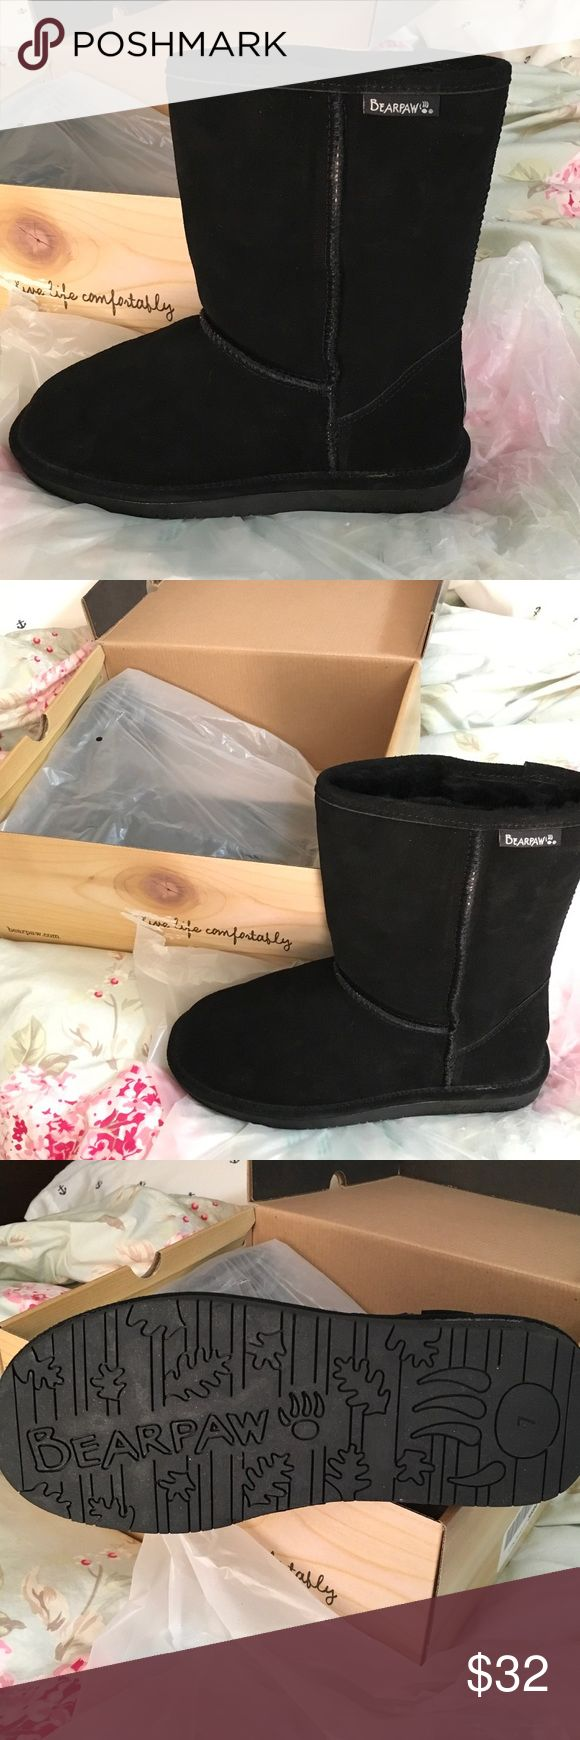 Bearpaw Emma Short Boots Bearpaw Emma Short Black Boots.  In original box never worn. Size 7. BearPaw Shoes Ankle Boots & Booties